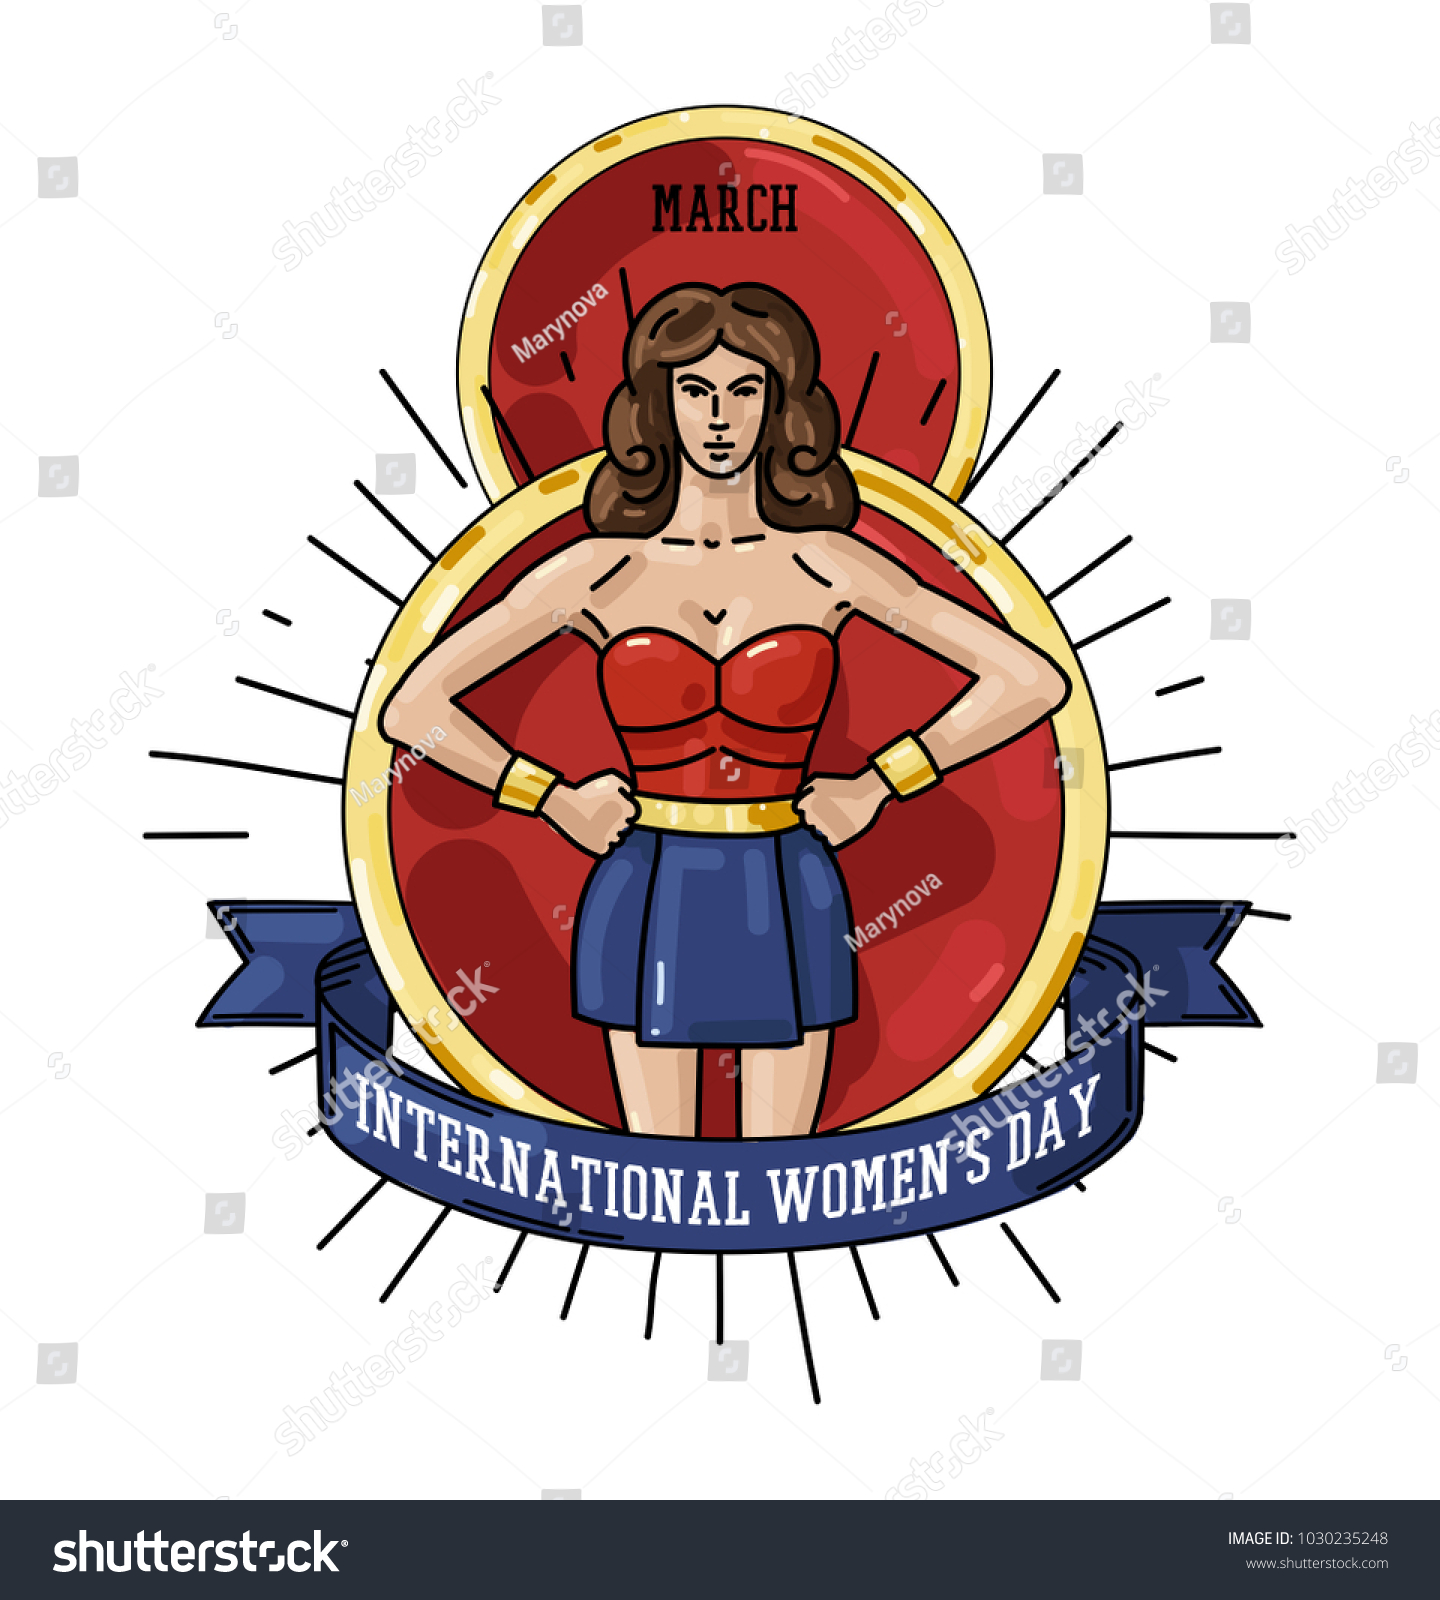 International womens day greeting card big stock vector 1030235248 international womens day greeting card with big 8 march date and strong woman warrior biocorpaavc